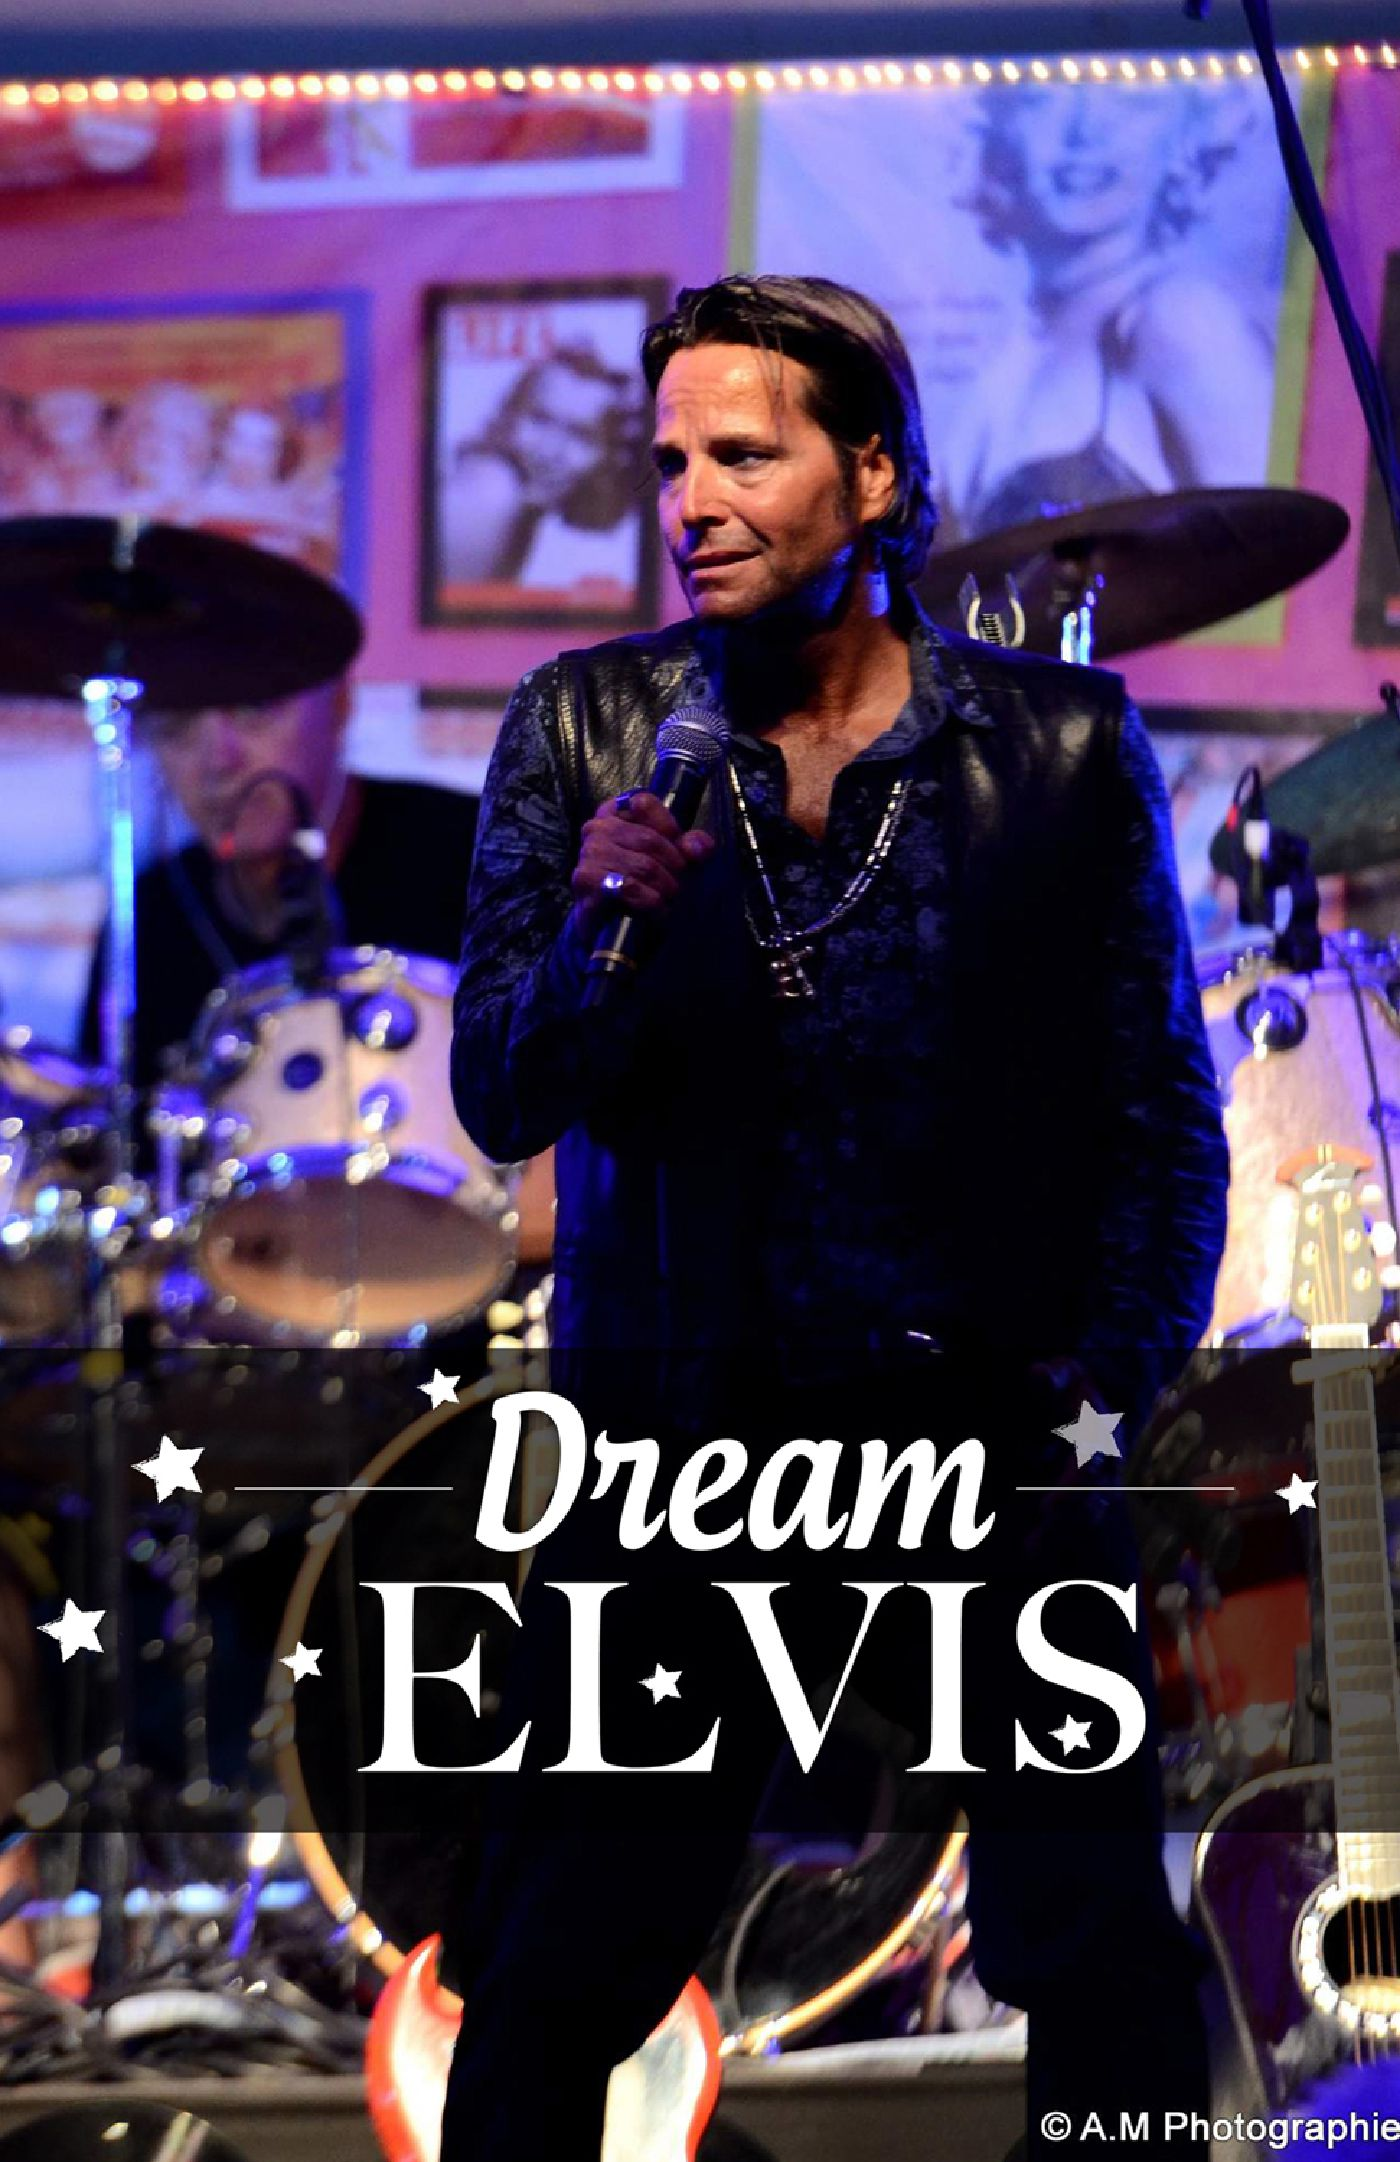 Dream Elvis